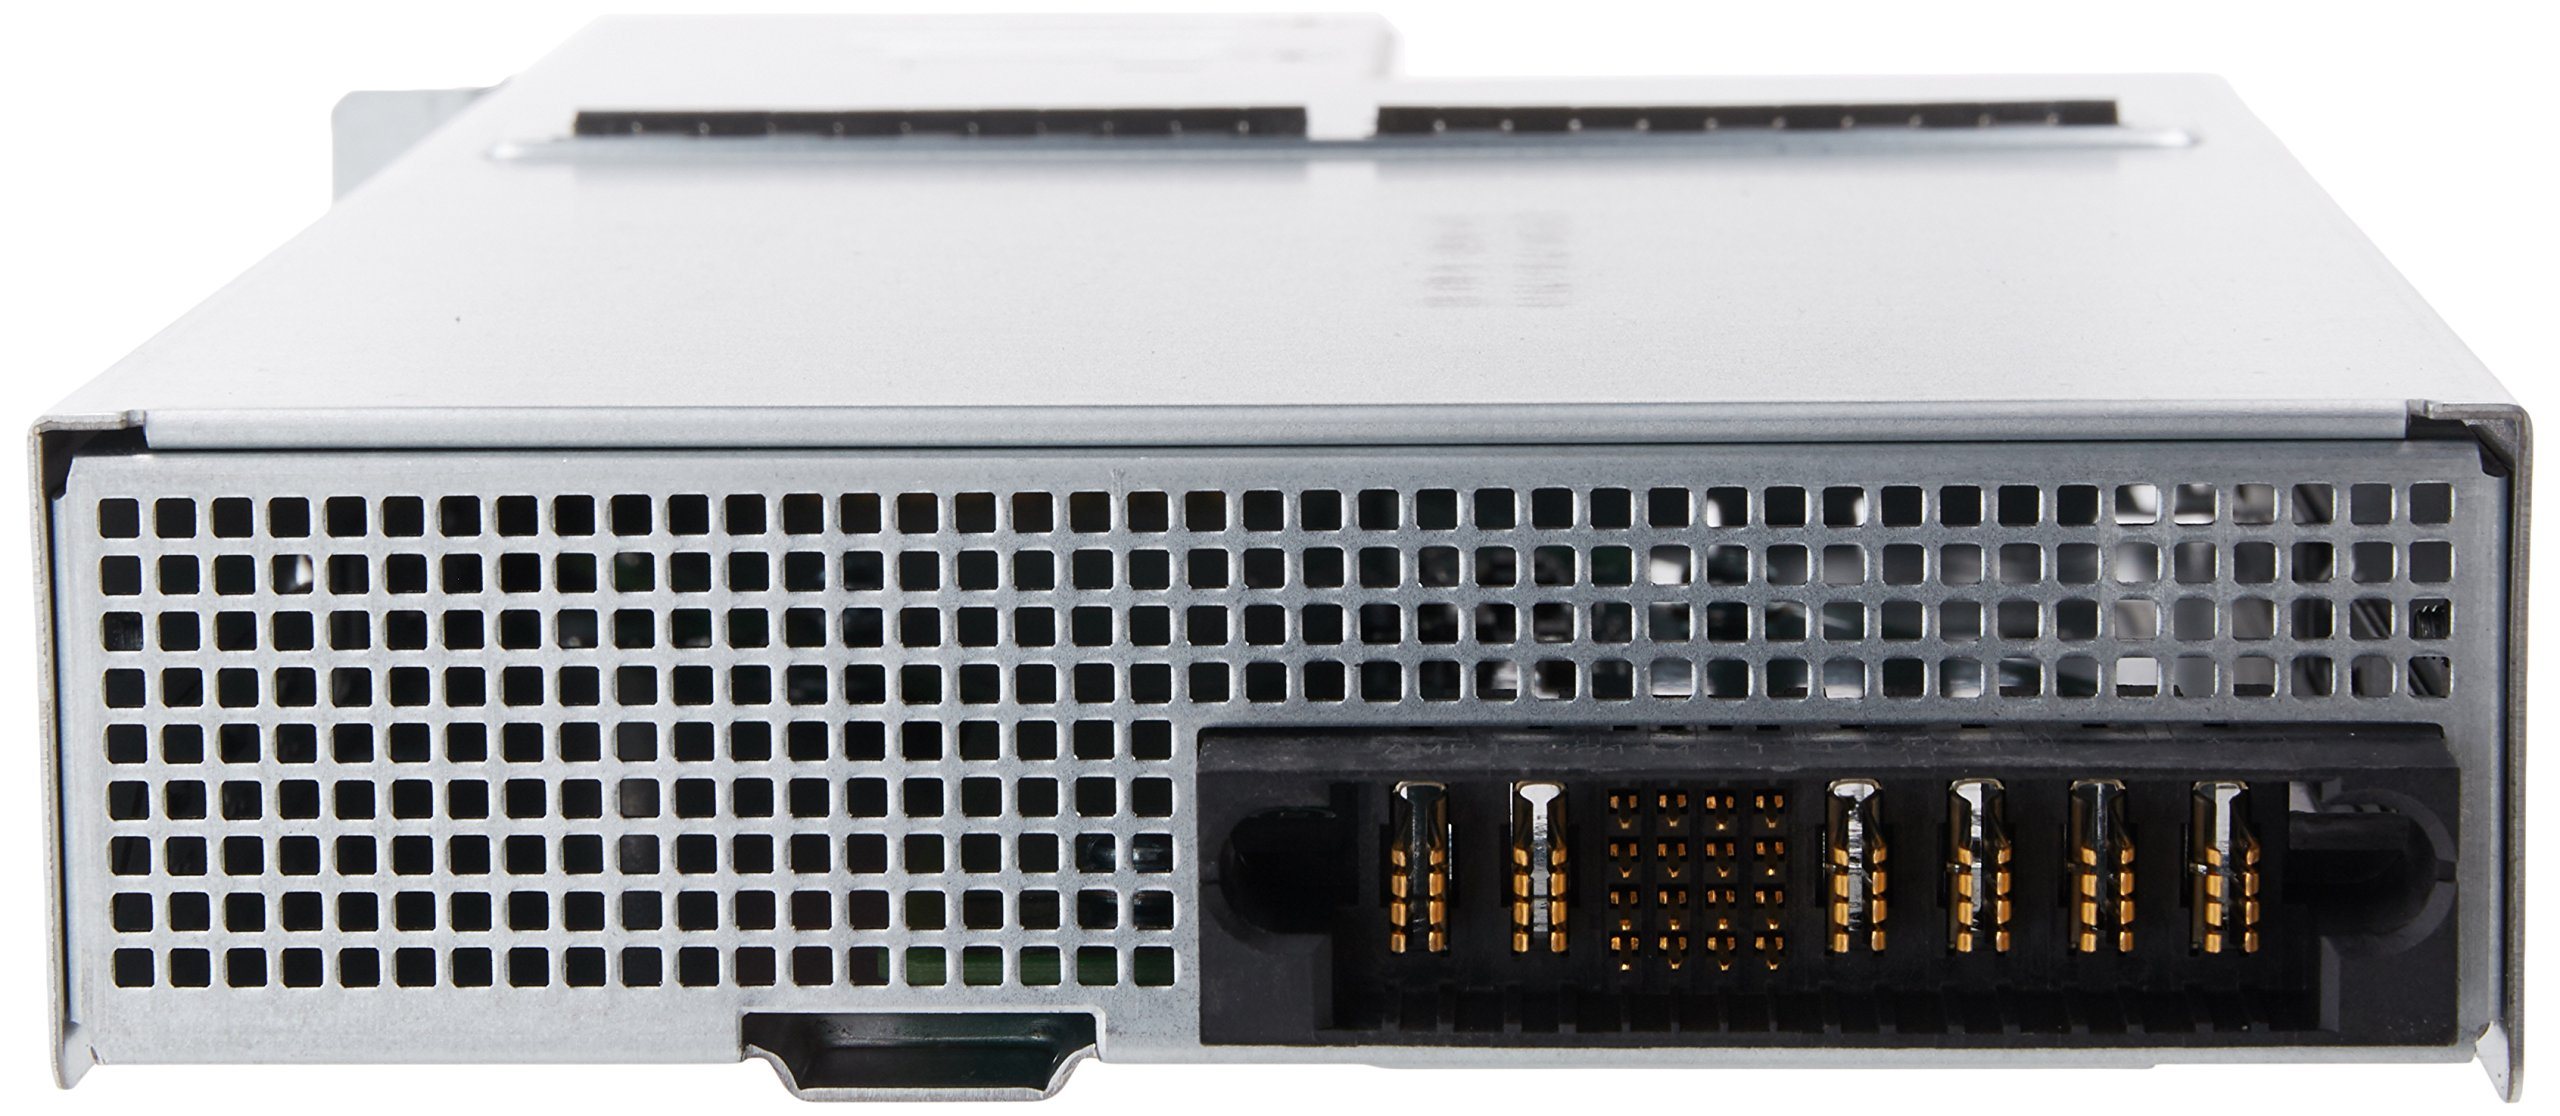 Cisco network device RPS adapter plate for 2921, 2951 & Redundant Power System 2300 (RPS-ADPTR-2921-51=) by Cisco (Image #2)